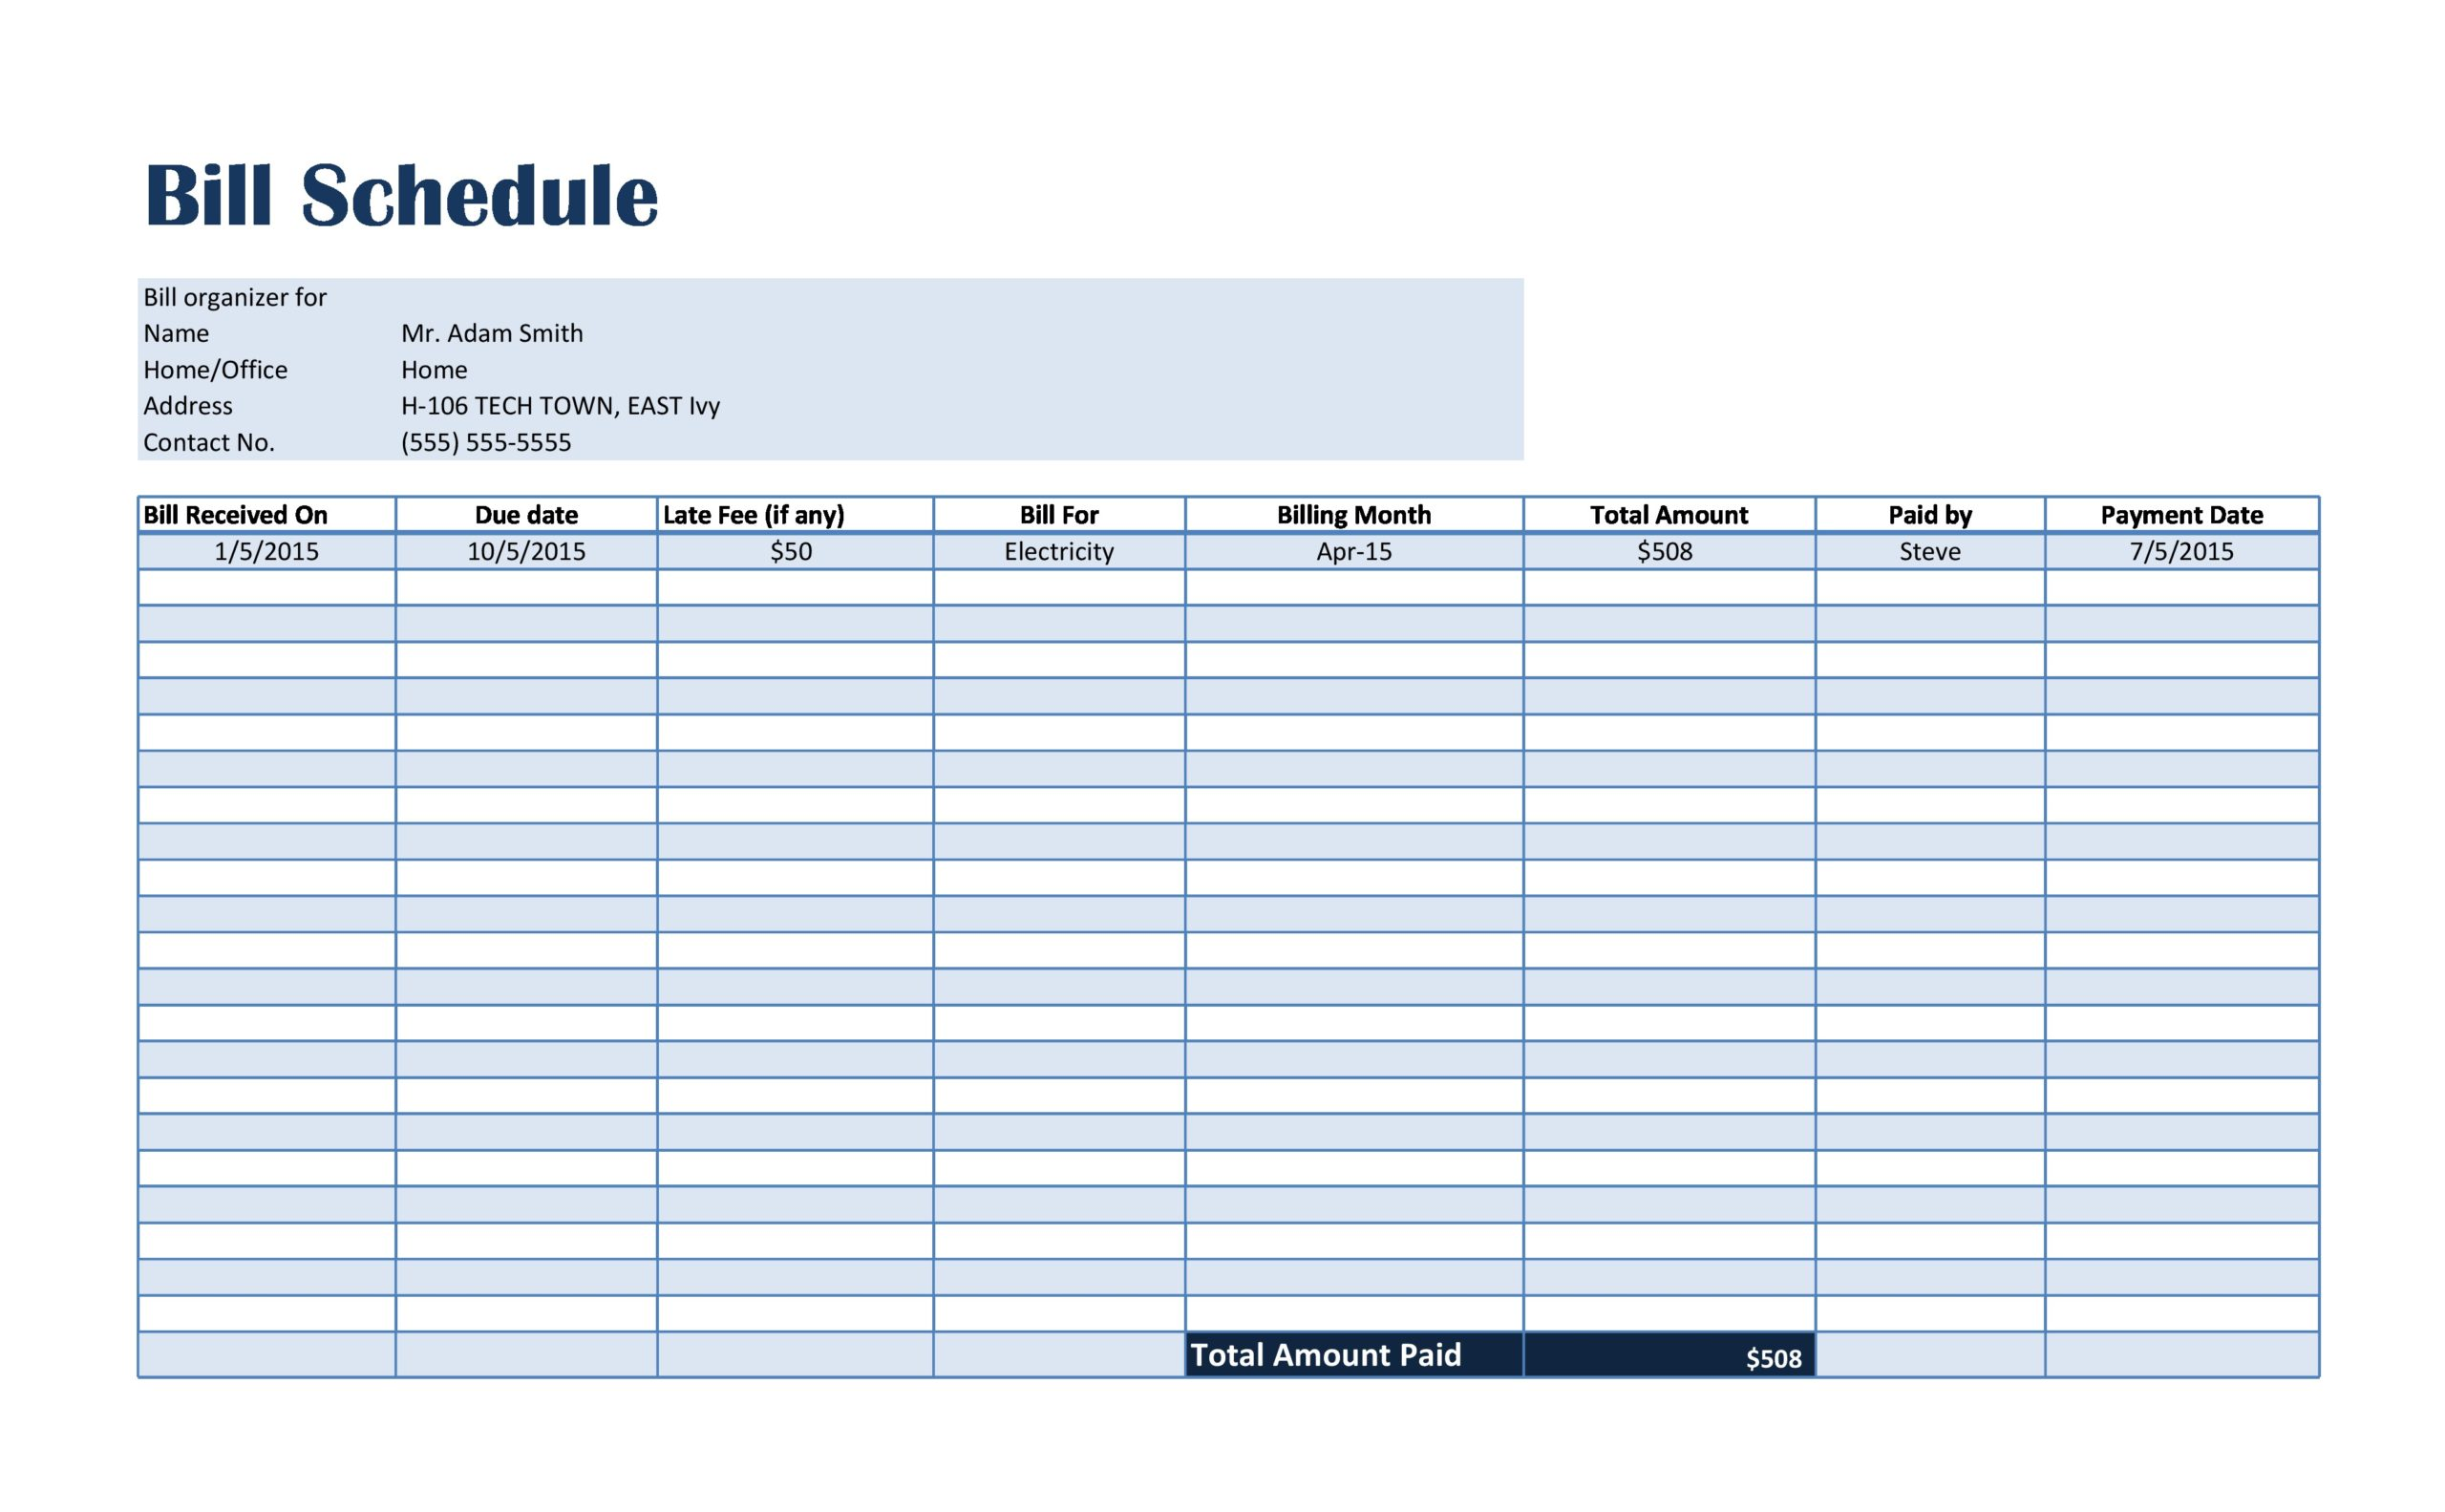 Full Size of Templates Download Business Cards Staples Template Finance Schedule